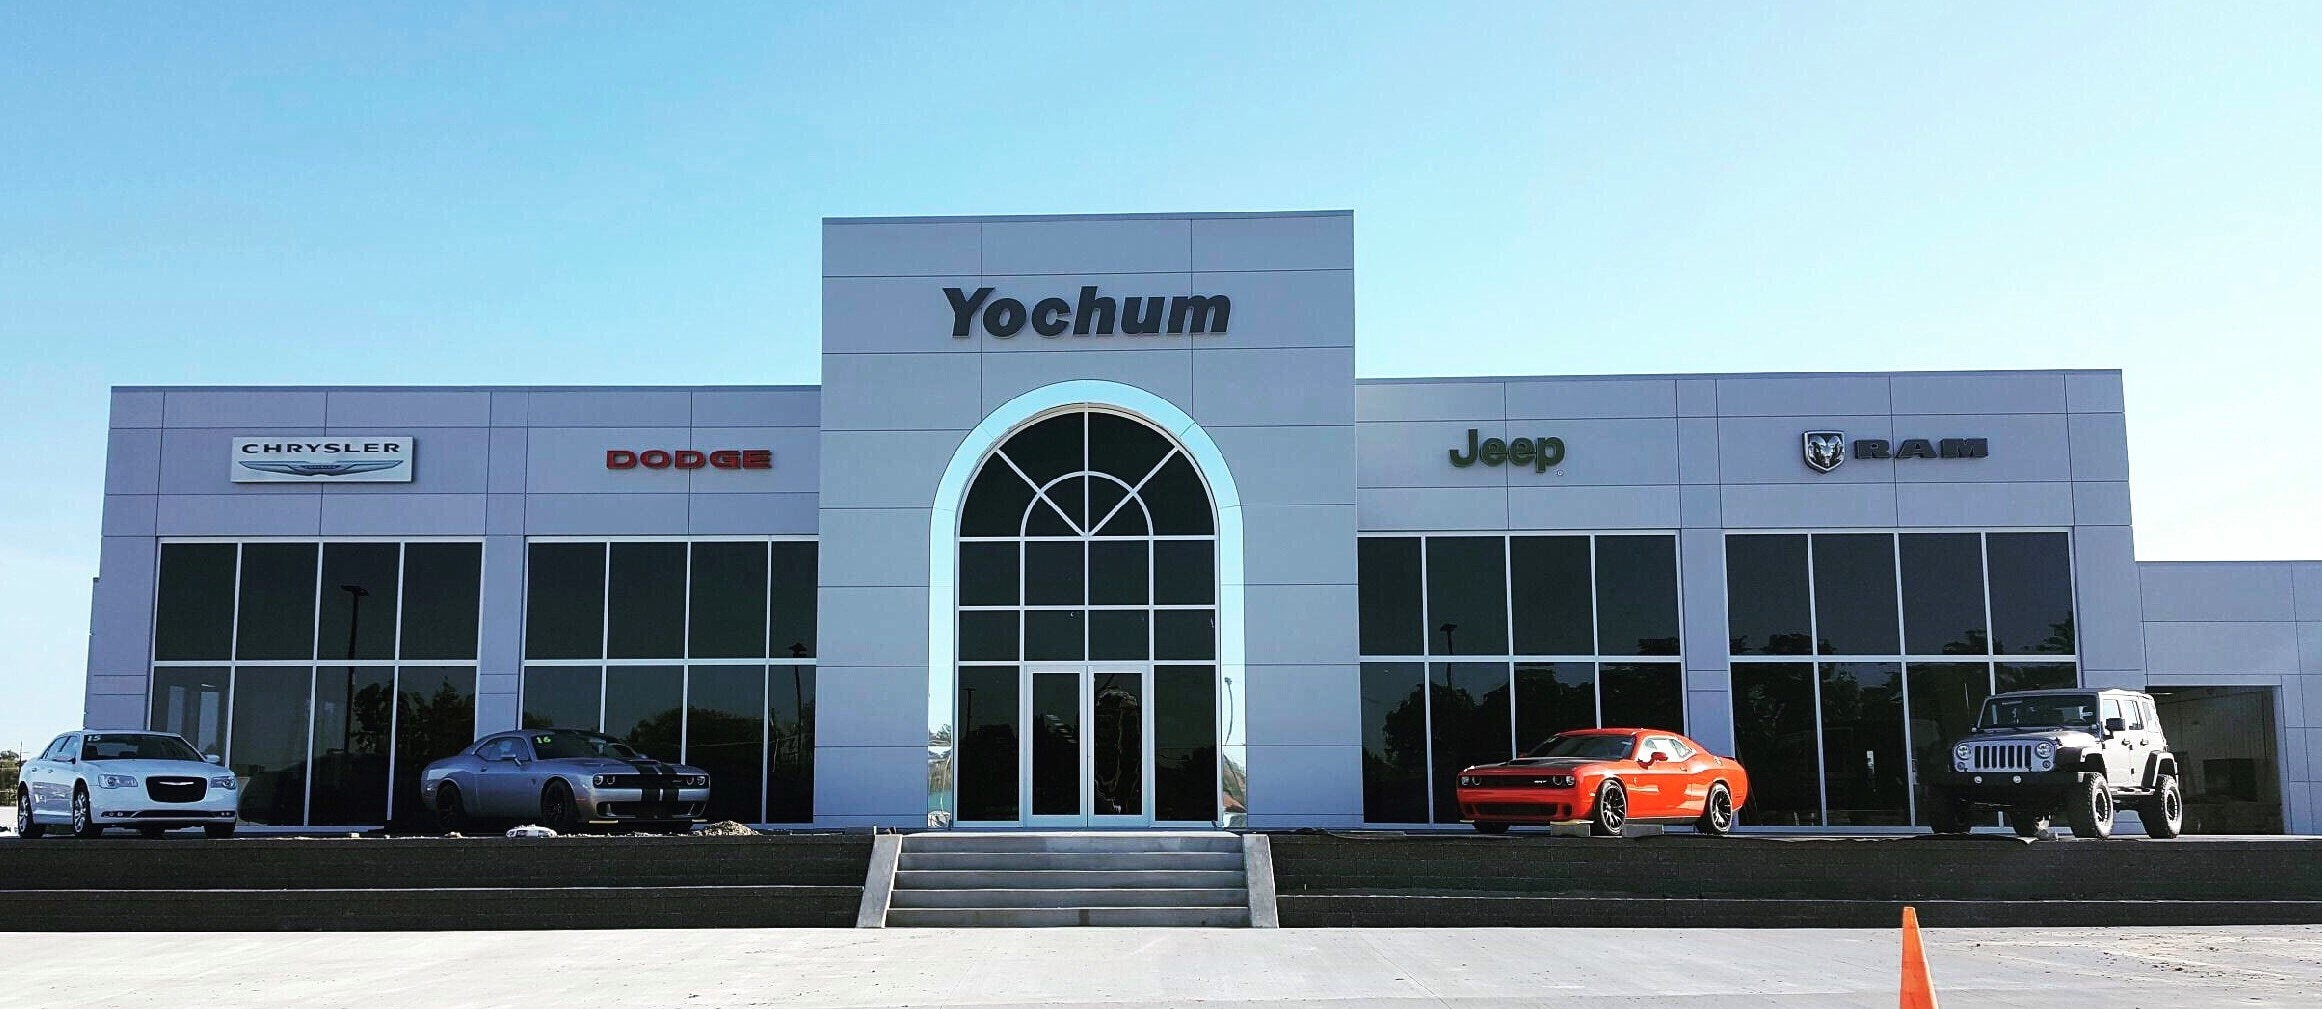 styles elegant dodge dealerships of car freedomdodgebuilding me near museum awesome years aaca from